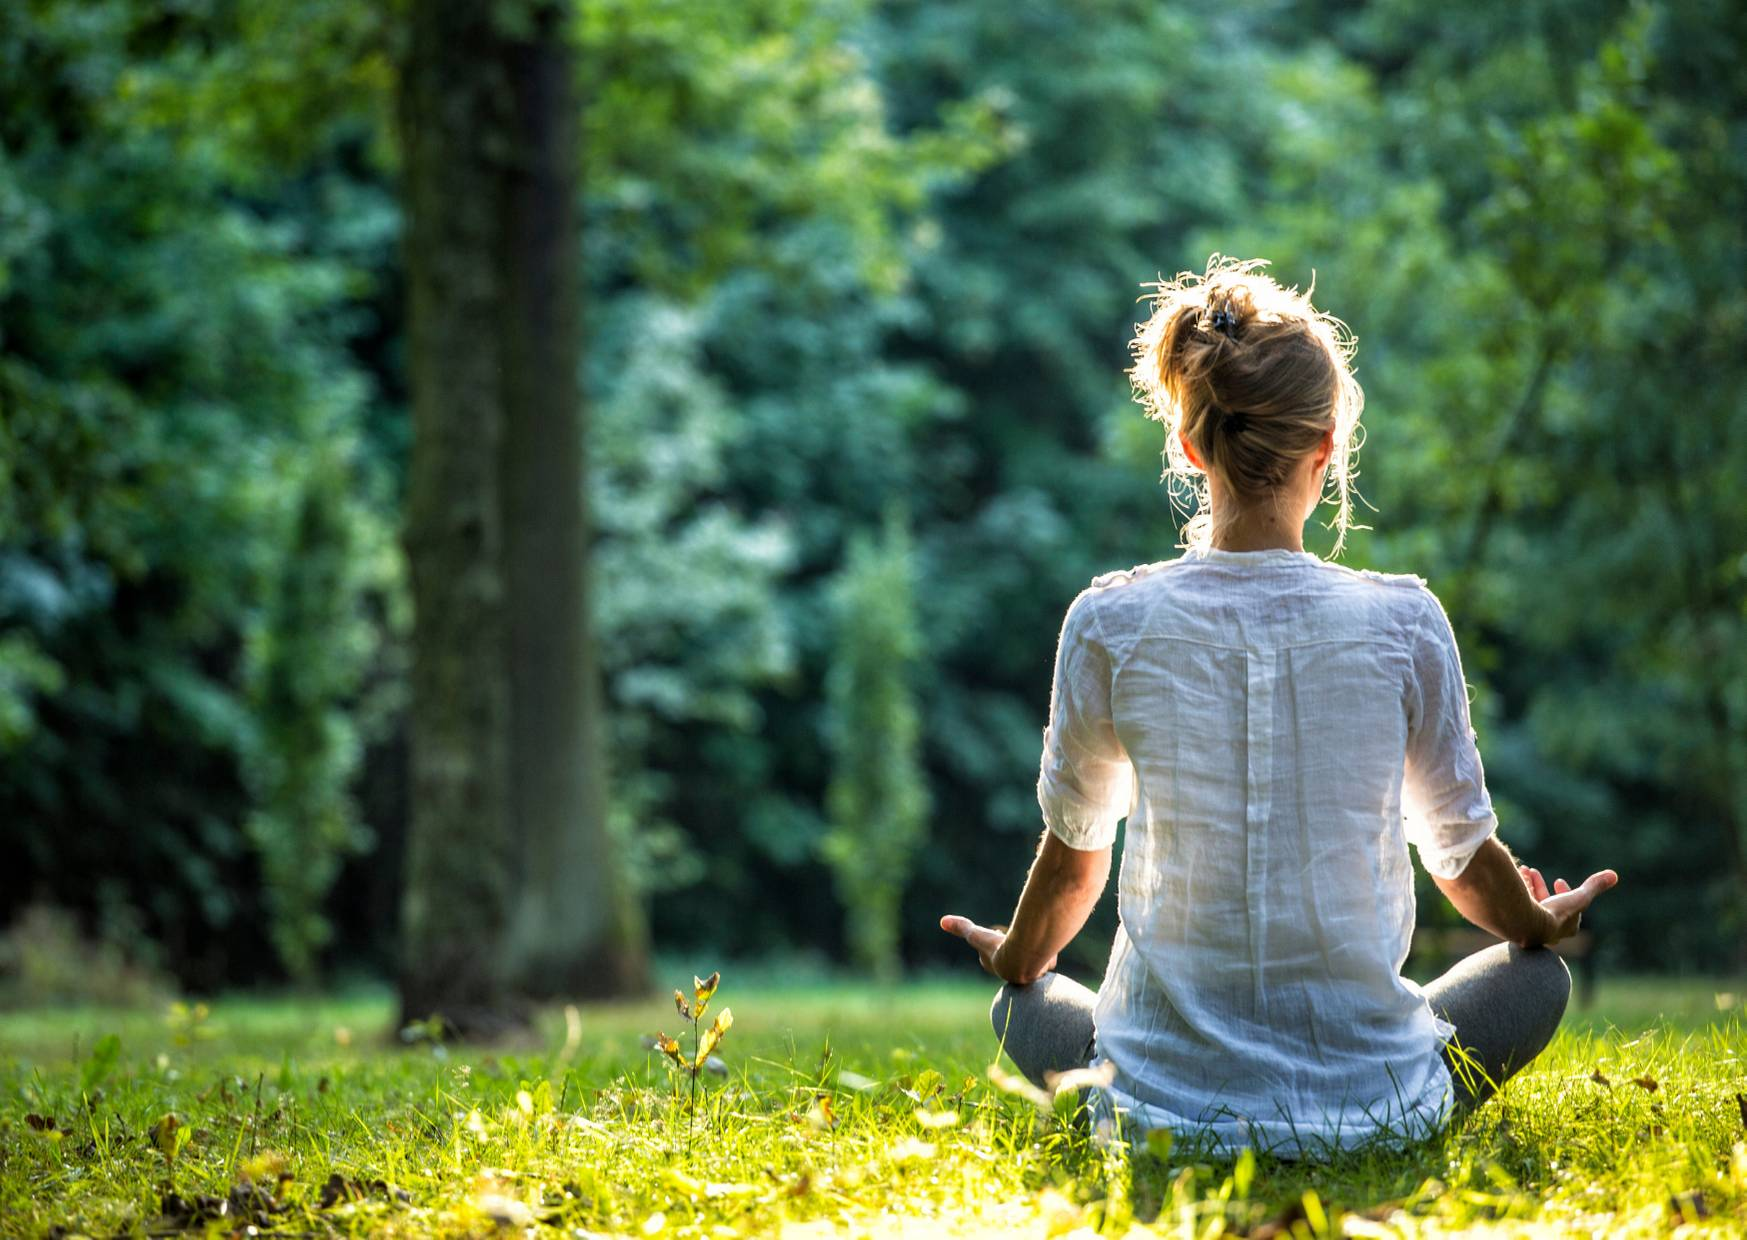 meditation helps when taking care of yourself